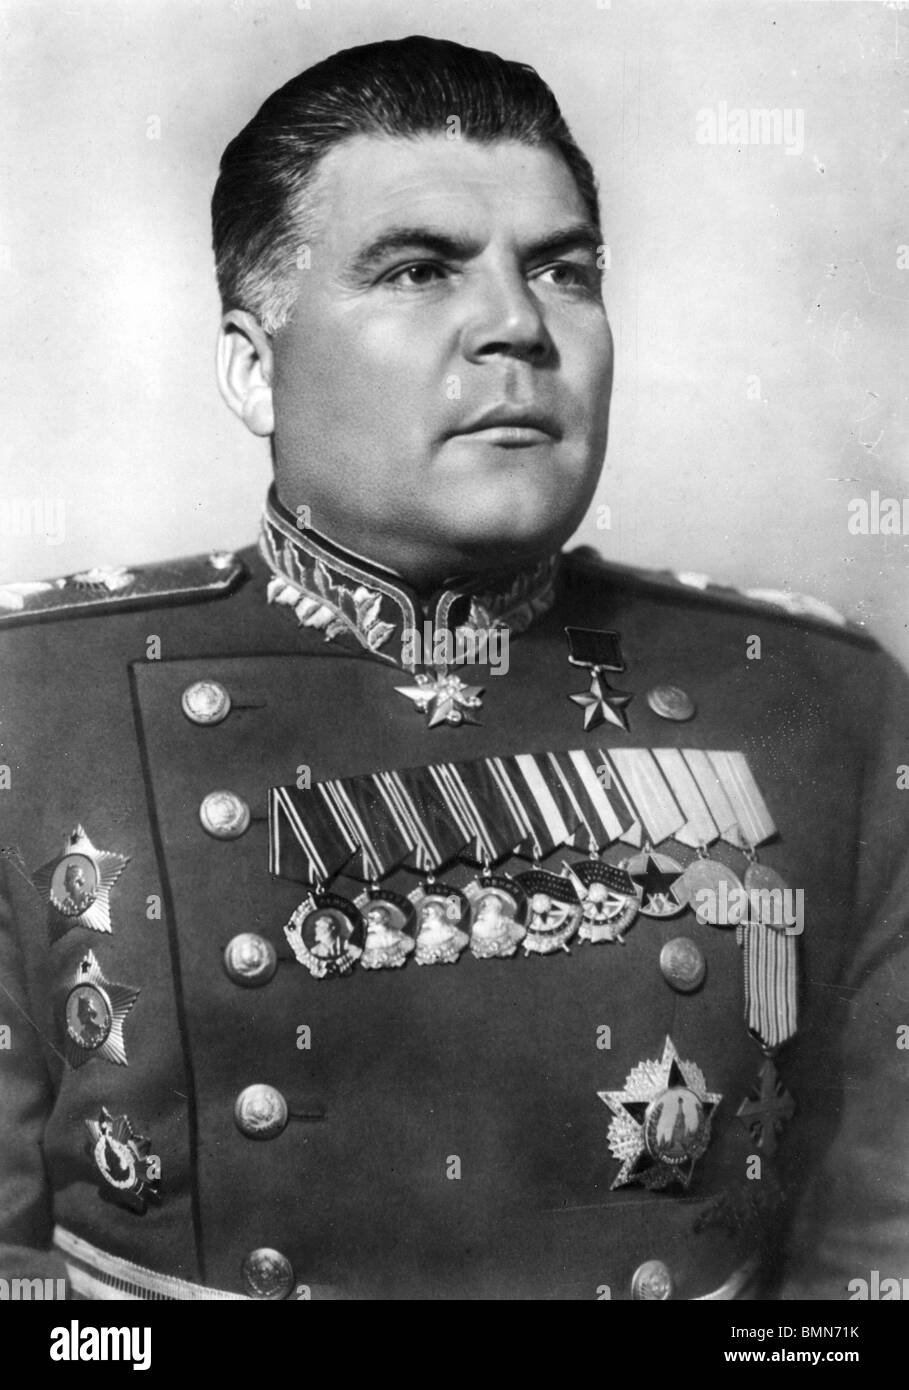 RODION MALINOVSKY  (1898-1967) Soviet military commander in WW2 - Stock Image